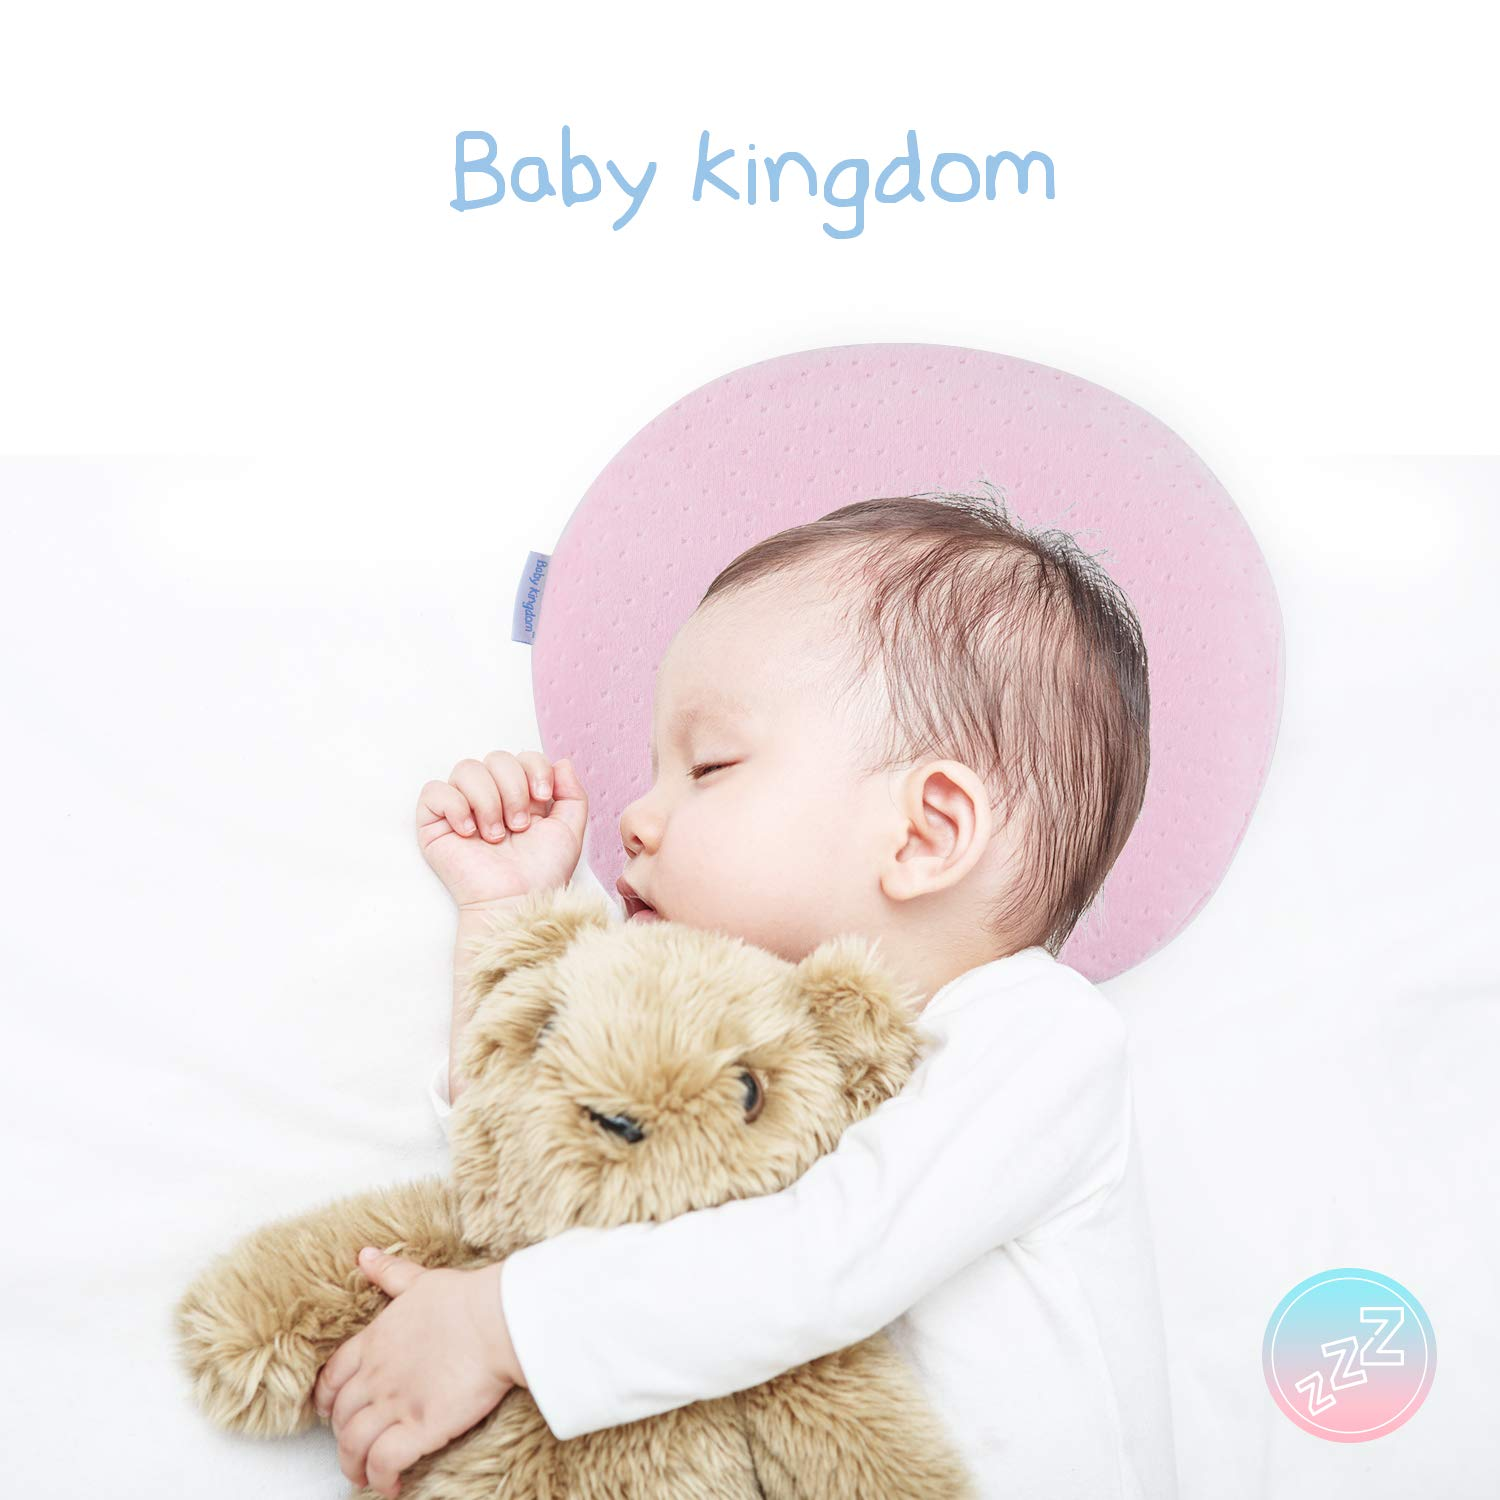 BBKD Baby Pillow|Infants Newborn Head Shaping Pillow|Prevent Flat Head Syndrome|Made of Memory Foam and Comes with 2 Cotton Pillowcases|Baby Shower & Registry Gift (Pink)